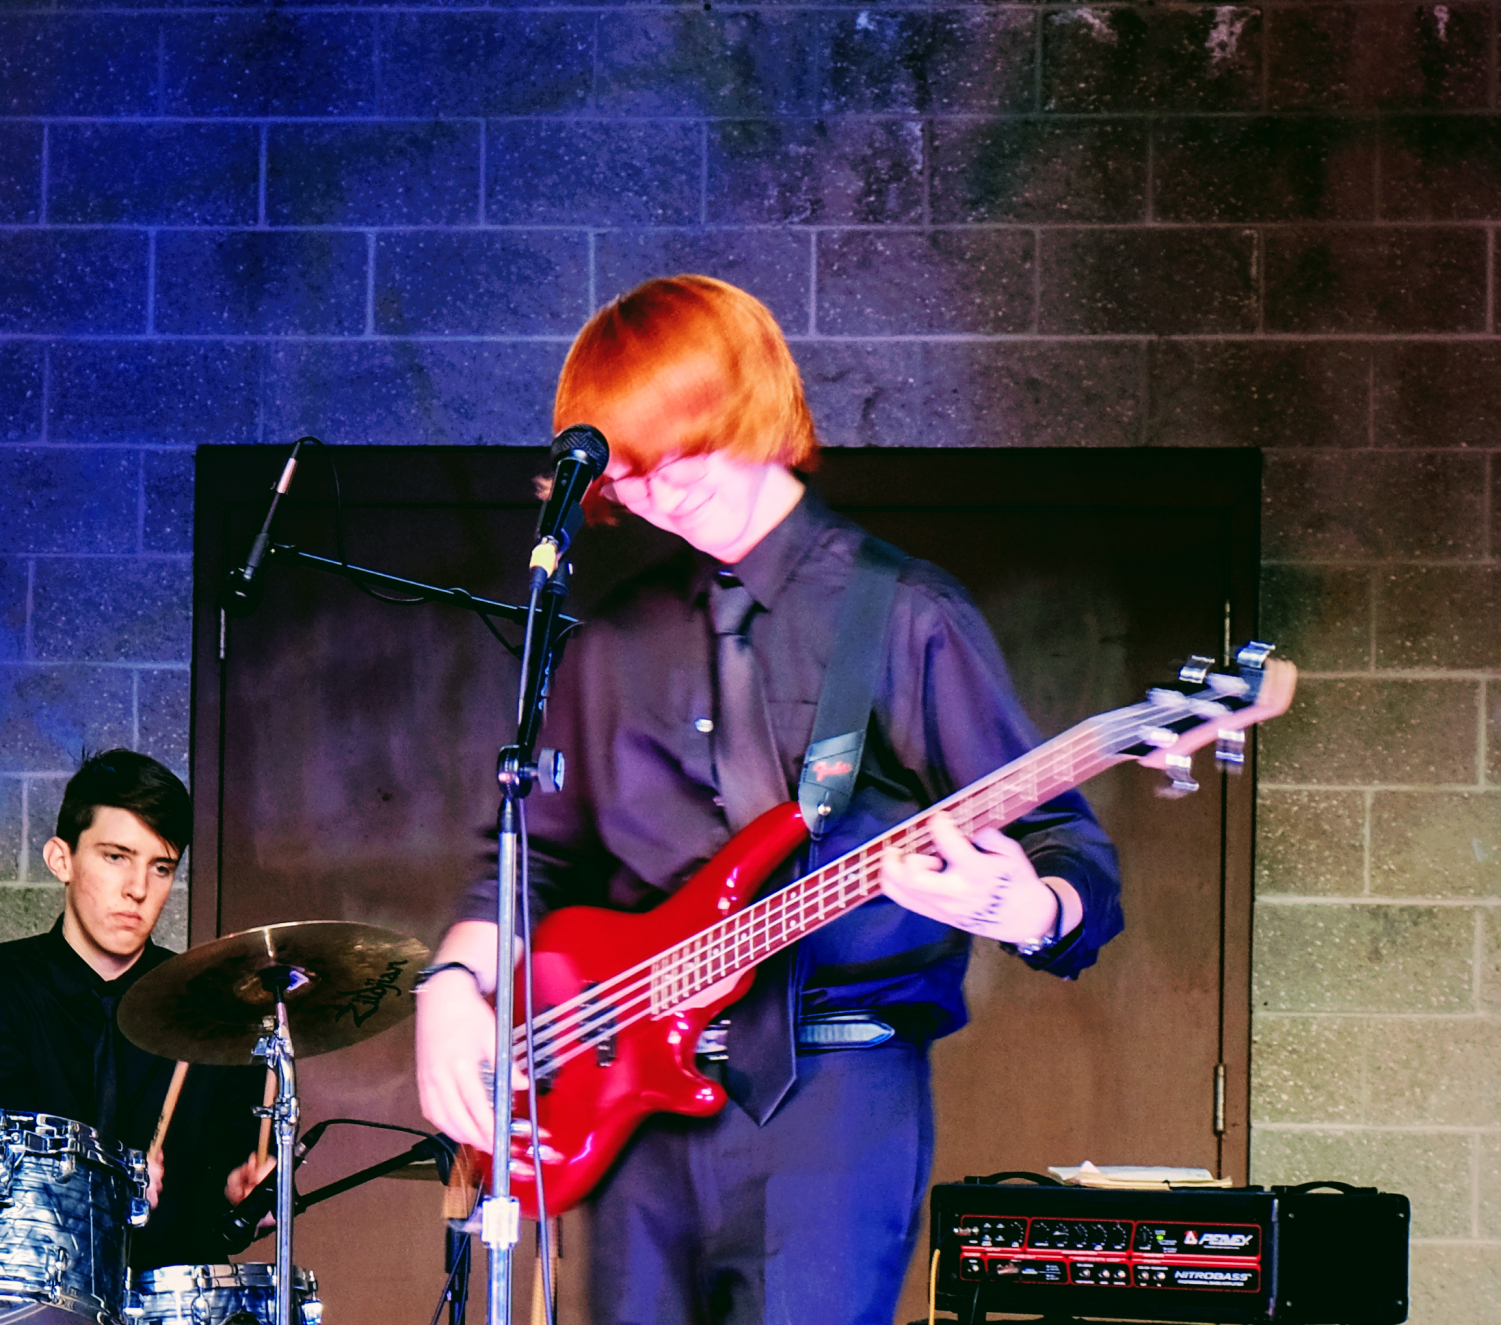 Spank, a rock band made up of Helena High students, performs in the fall Quadratum Music Festival at Performance Square in downtown Helena.